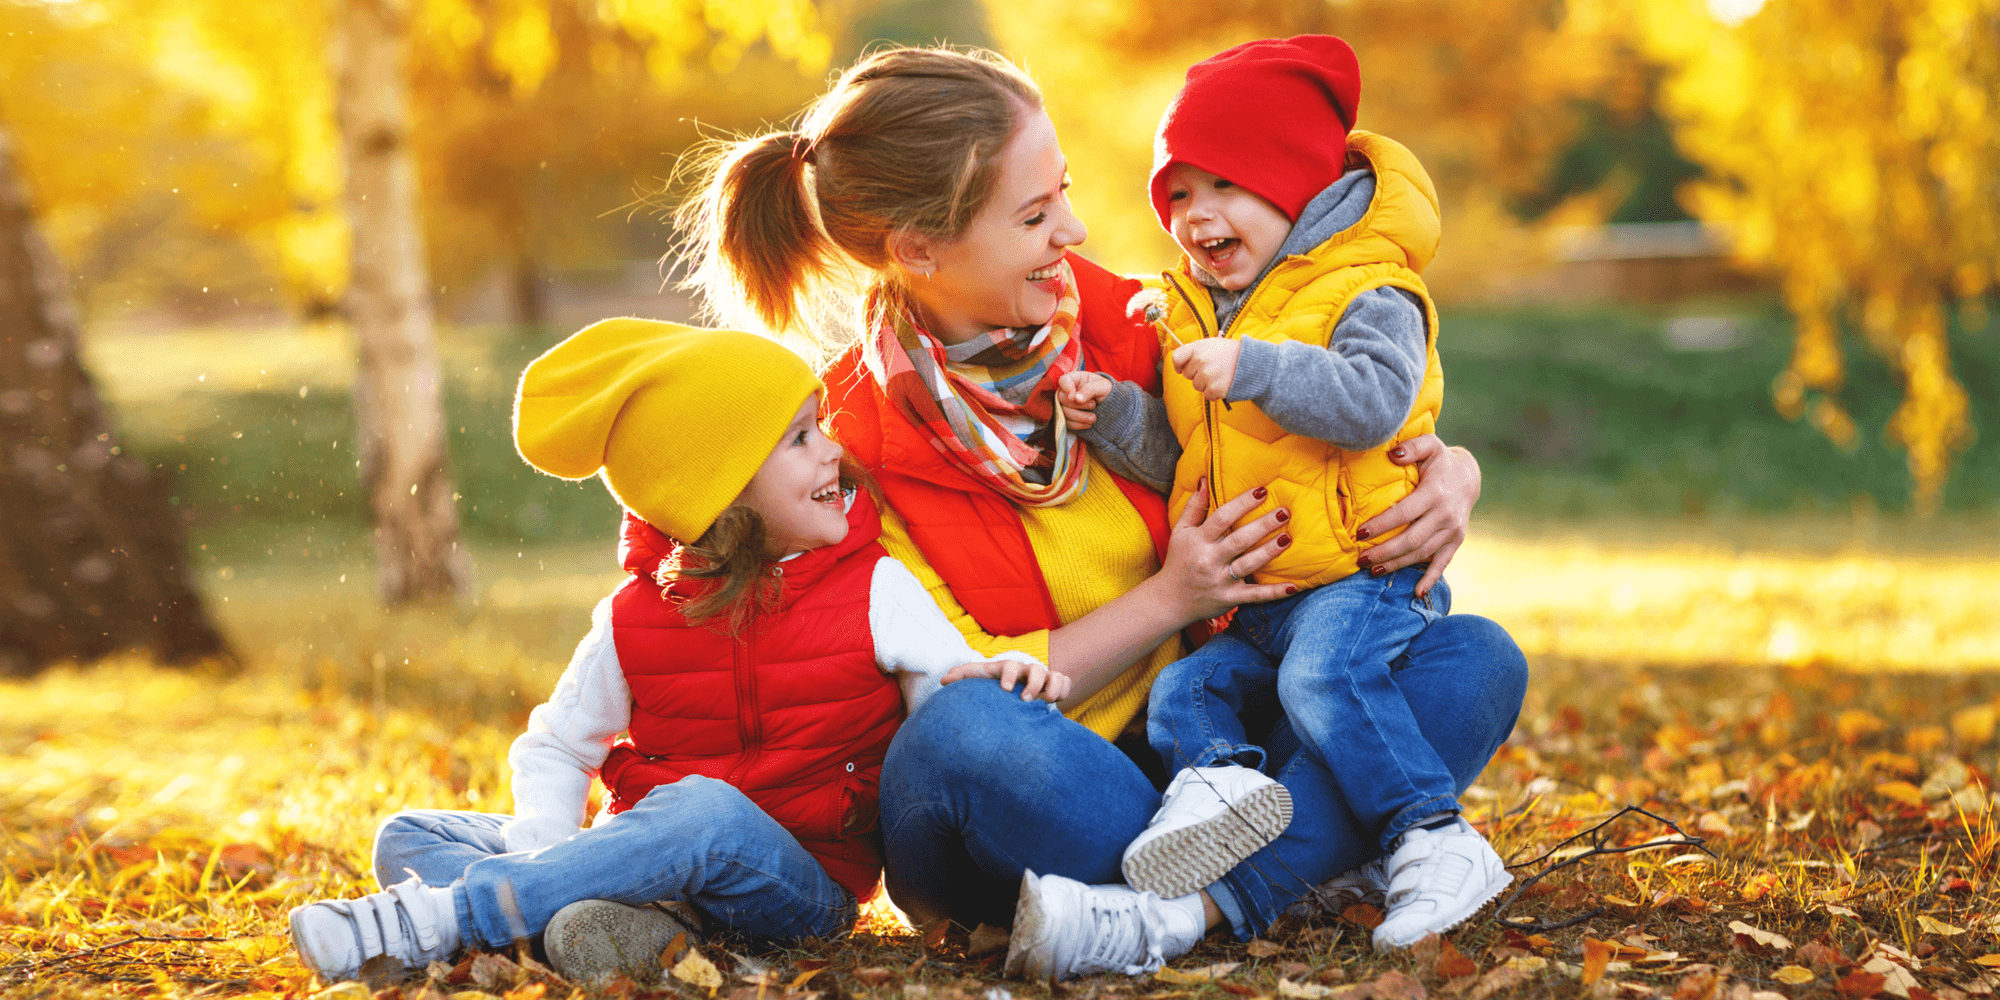 Mum and children playing in the Autumn outdoors